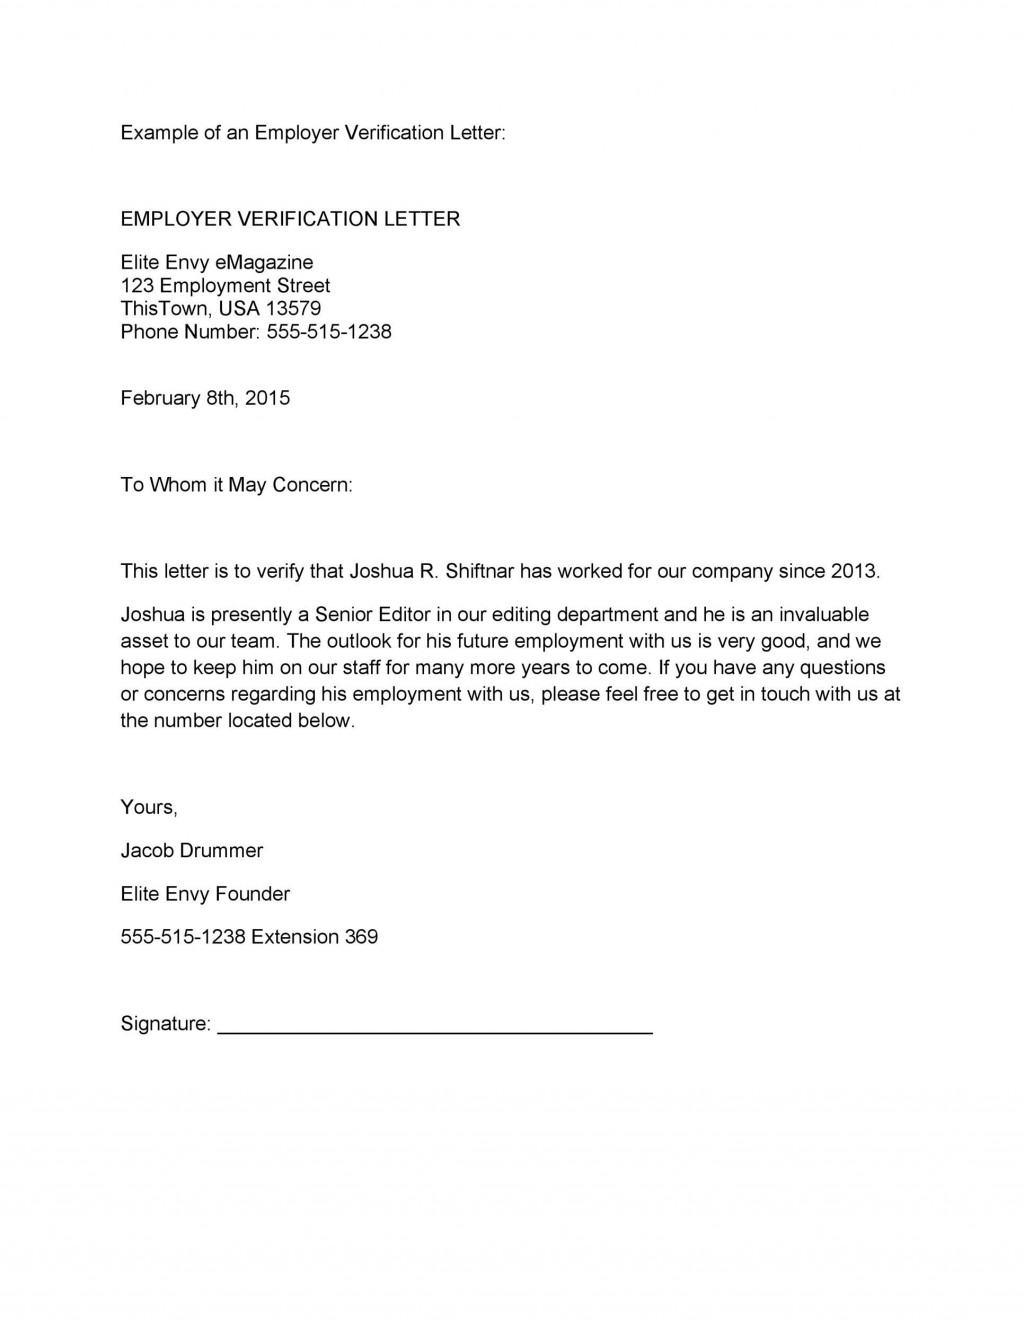 006 Awesome Letter Of Employment Template Concept  Confirmation Canada For MortgageLarge